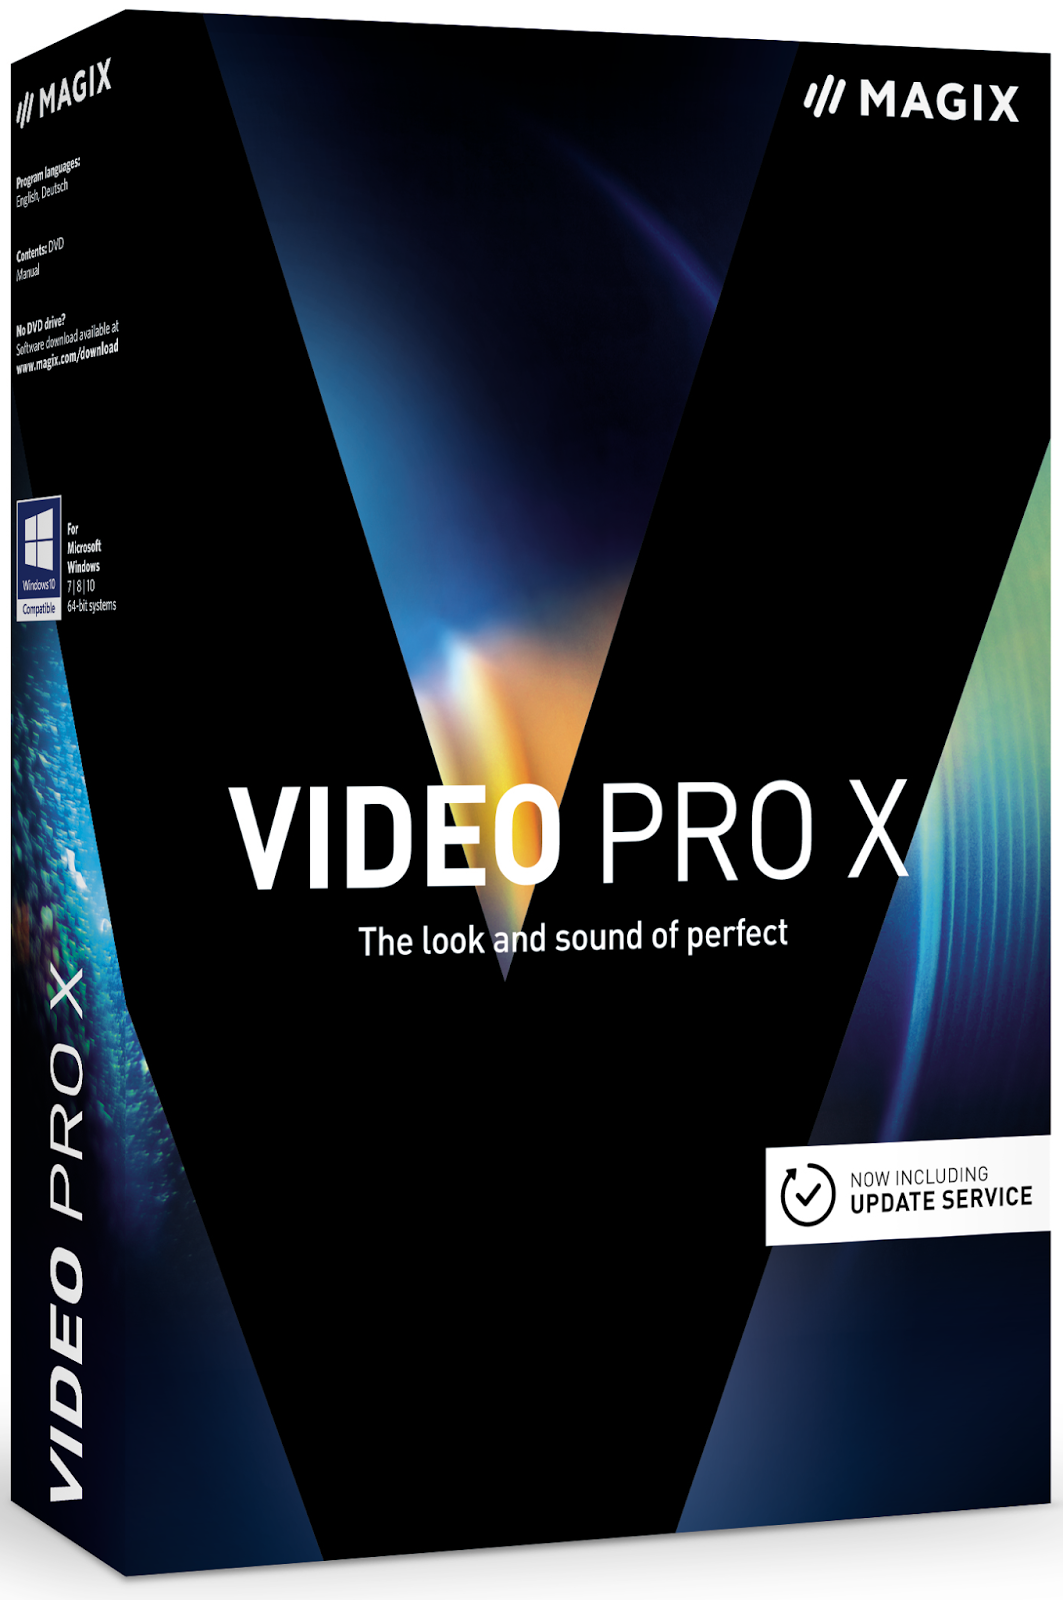 Synapse Circuit Technology Review: MAGIX New Video Pro X Is Out